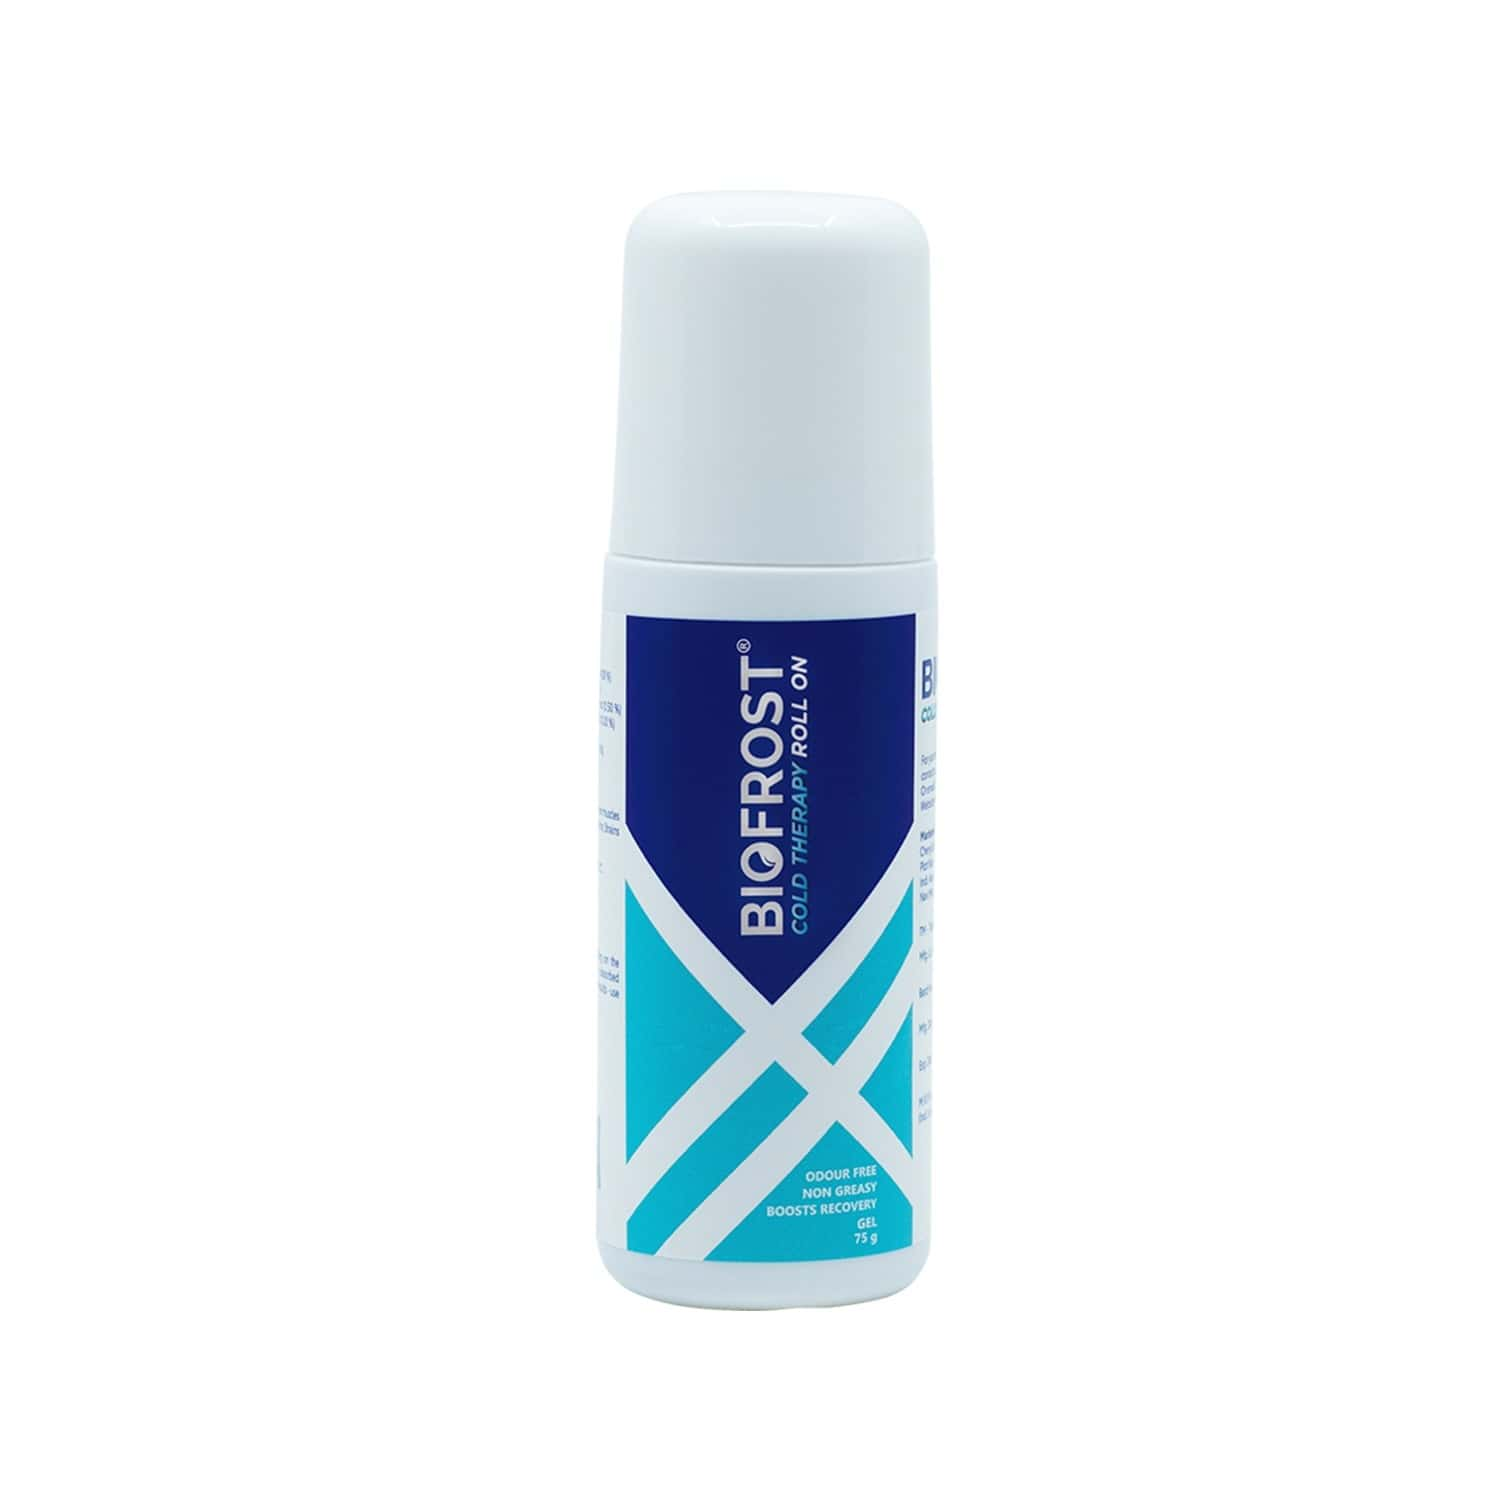 Biofrost Cold Therapy Roll On - 75g